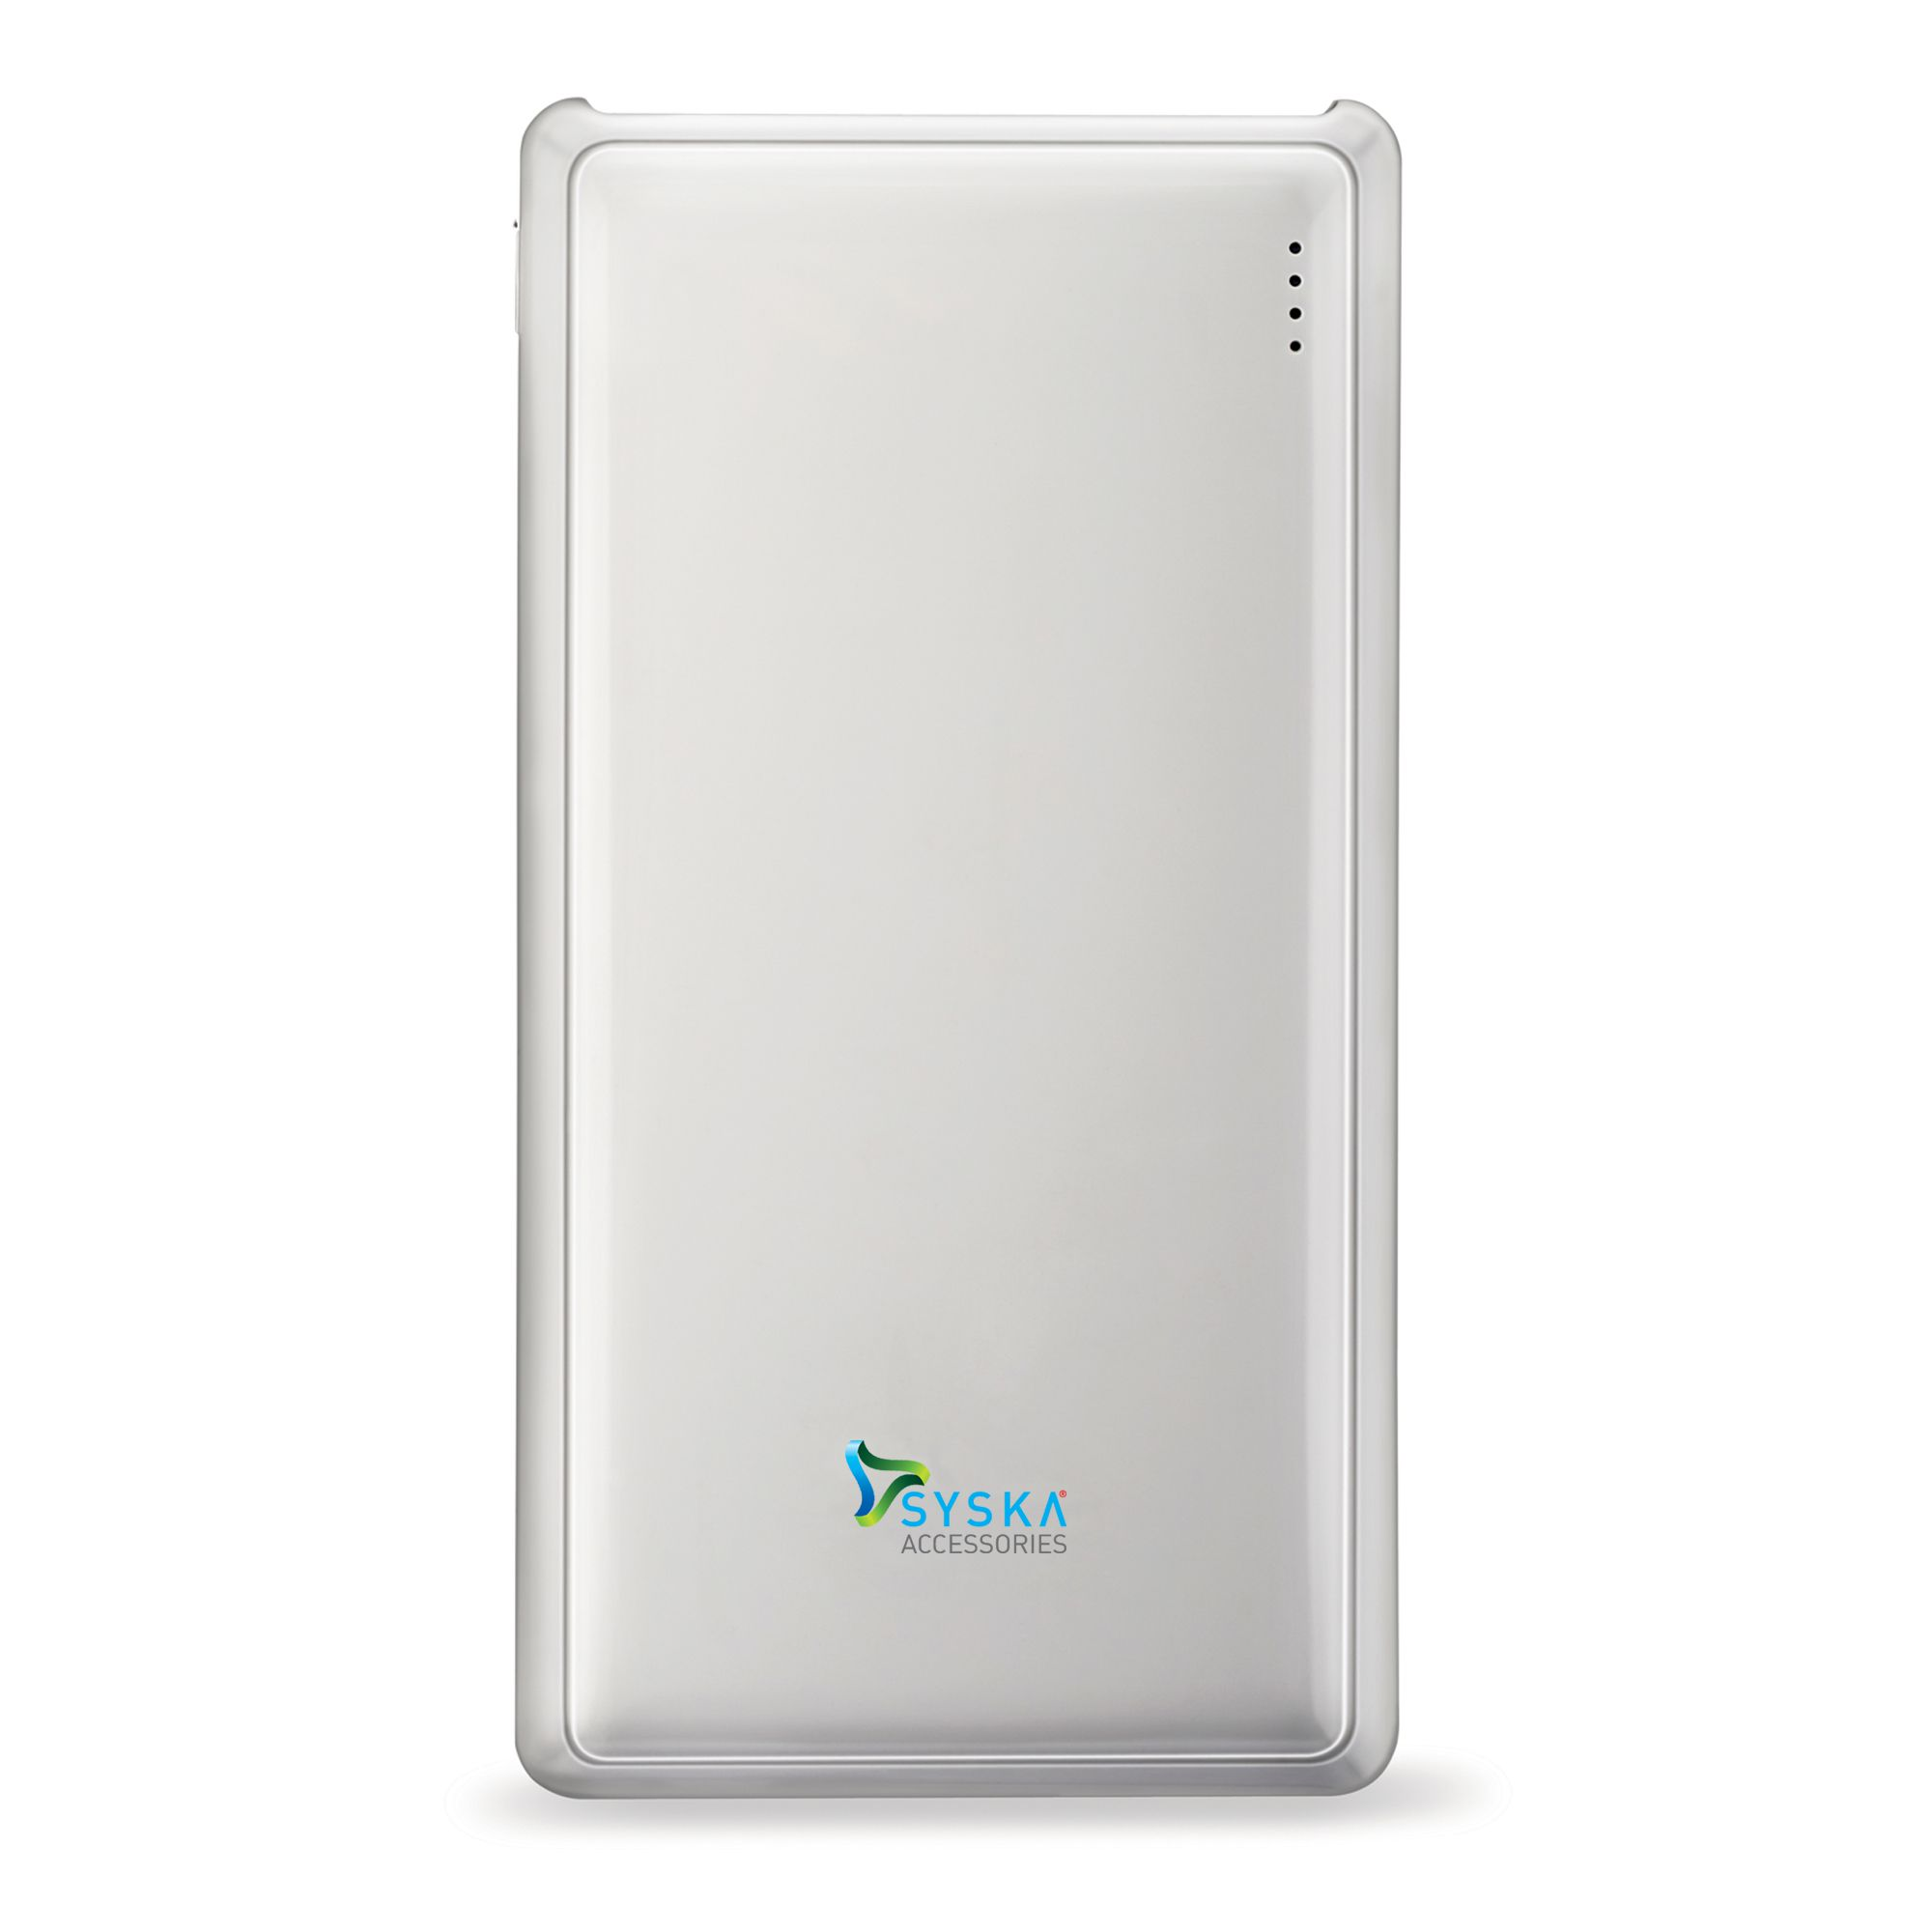 Syska Power Pro 200- Power Bank 20000 mAh